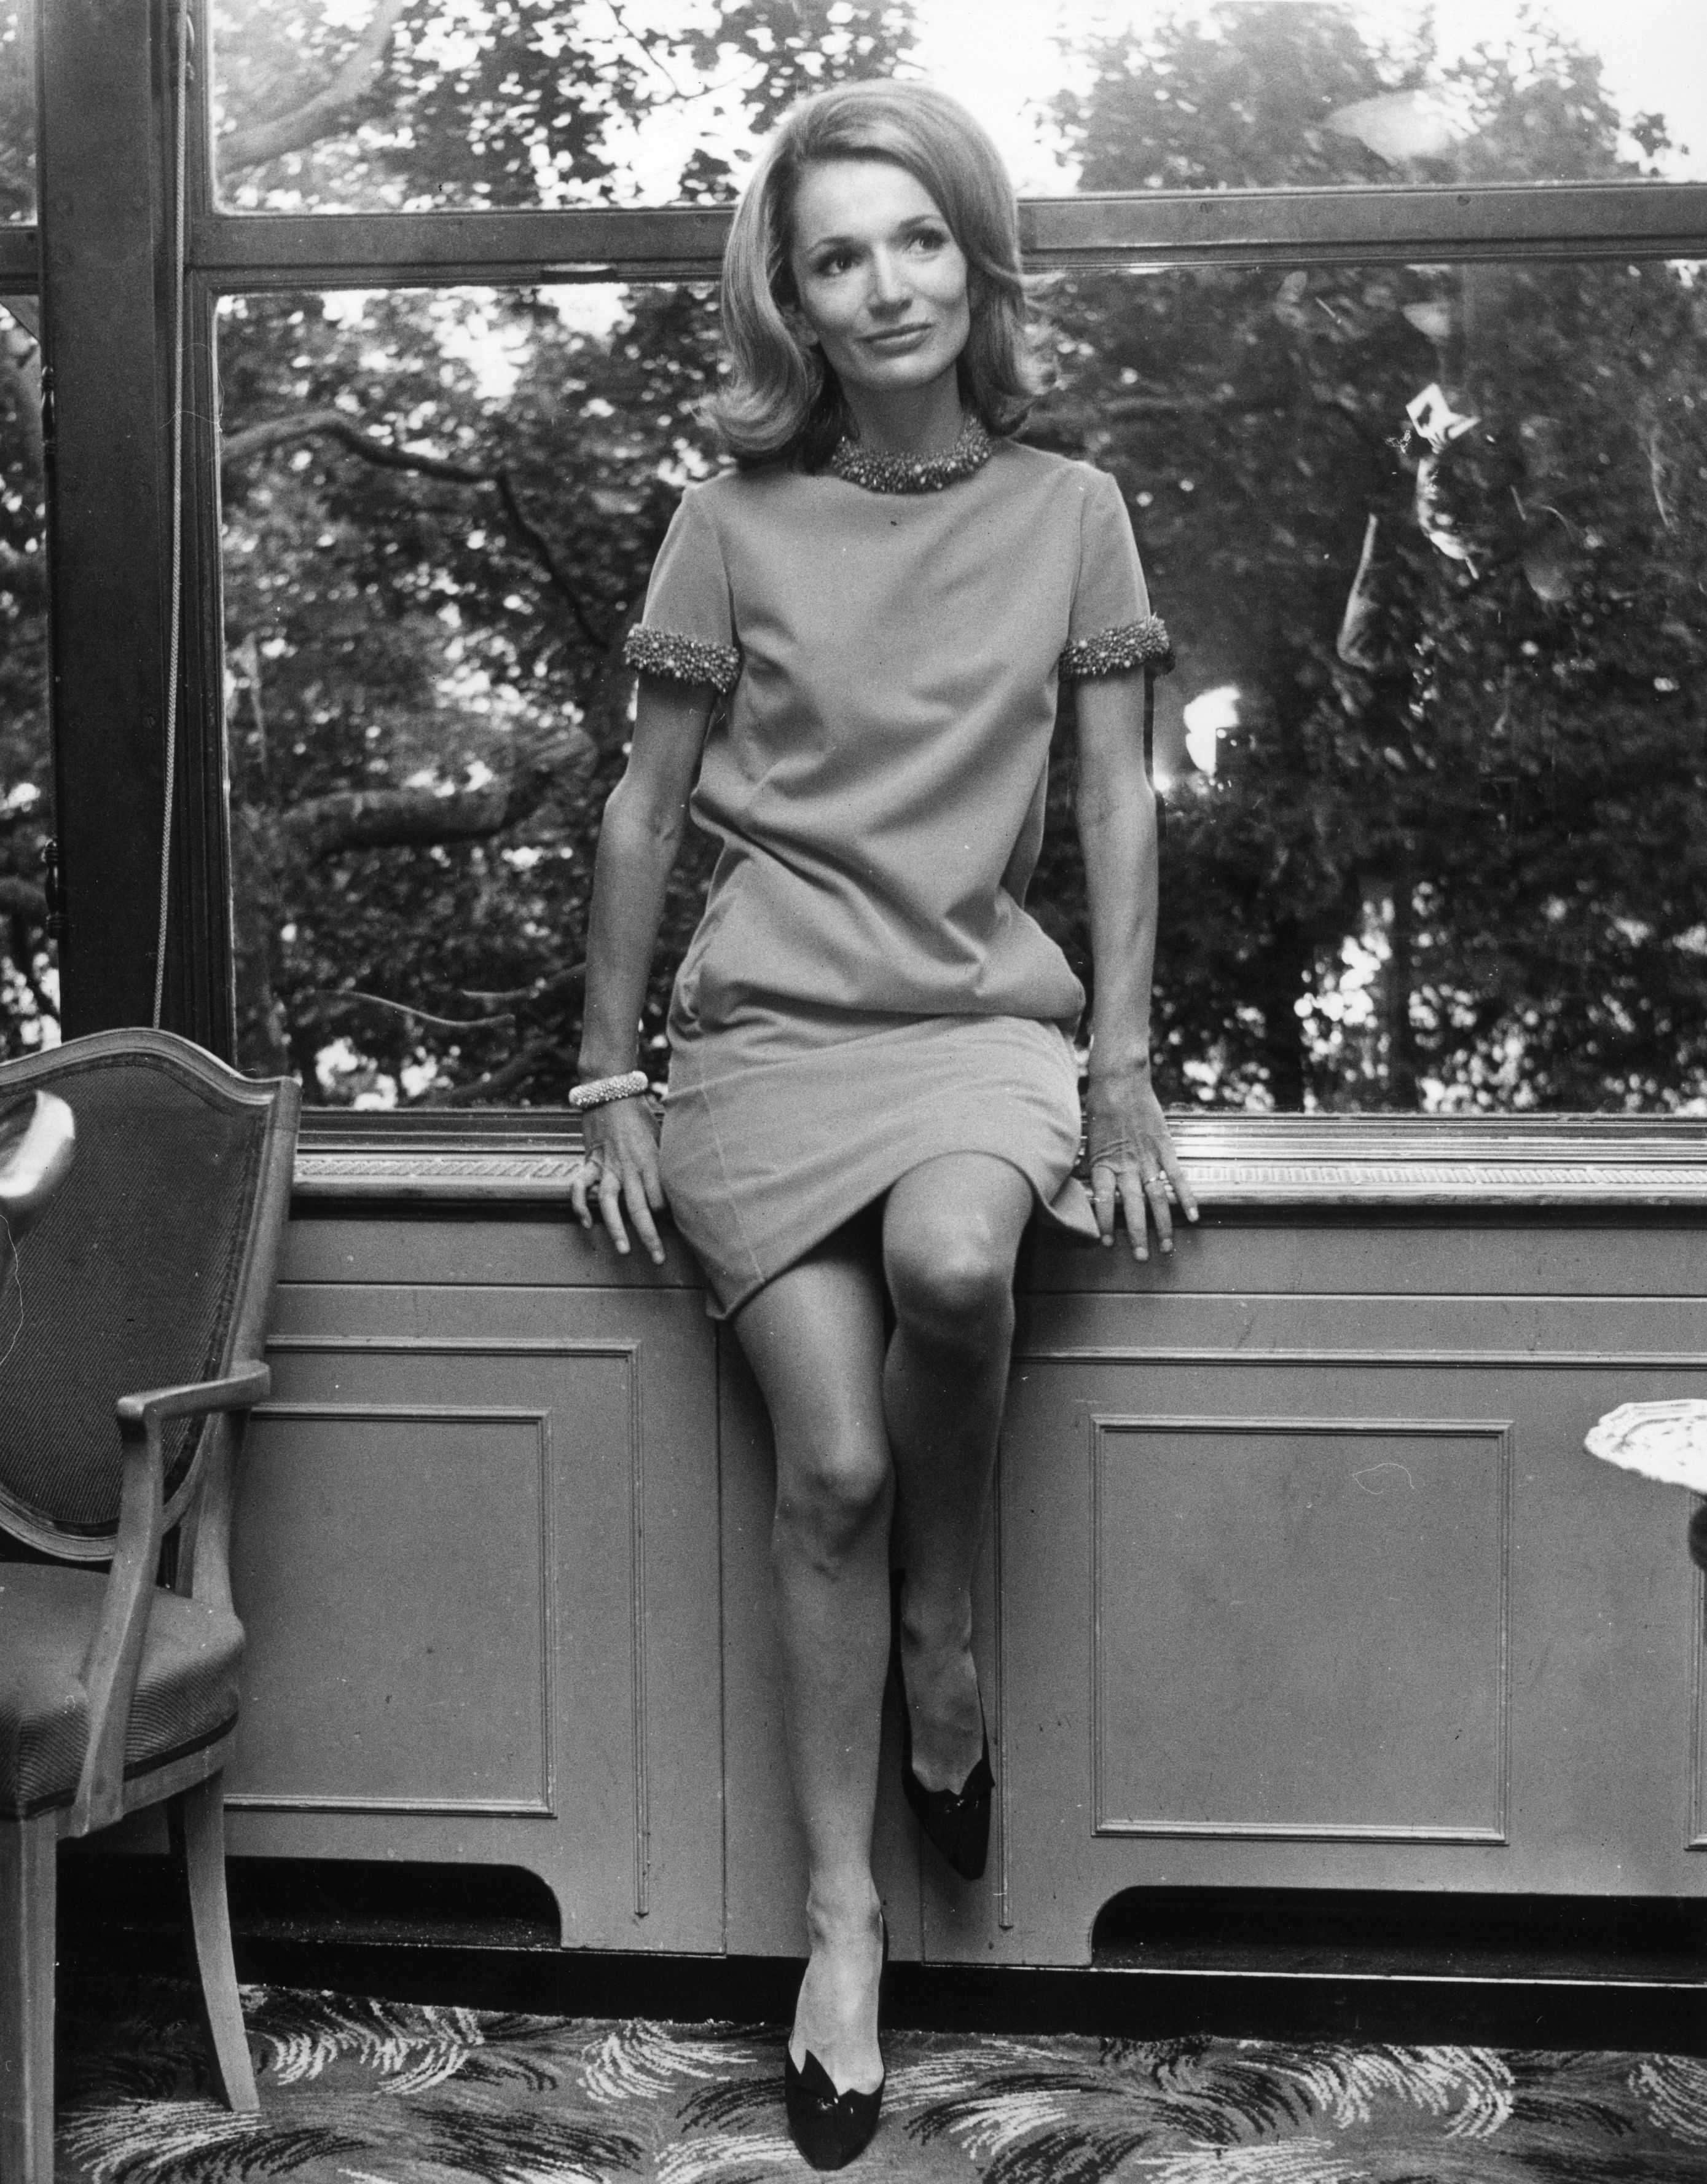 Lee Radziwill at London's Savoy Hotel | Photo: Getty Images